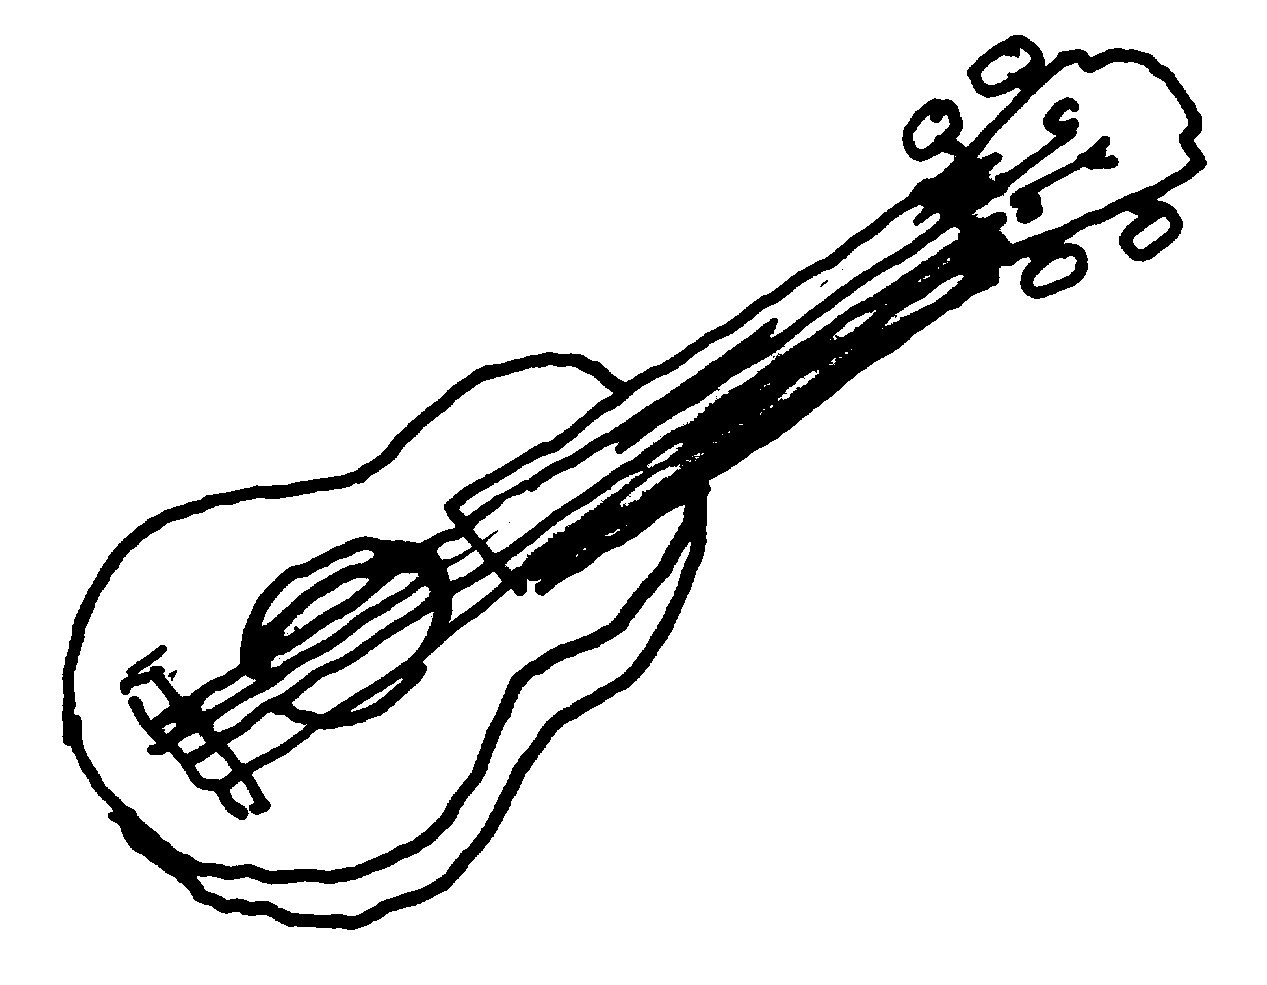 music instruments band clipart